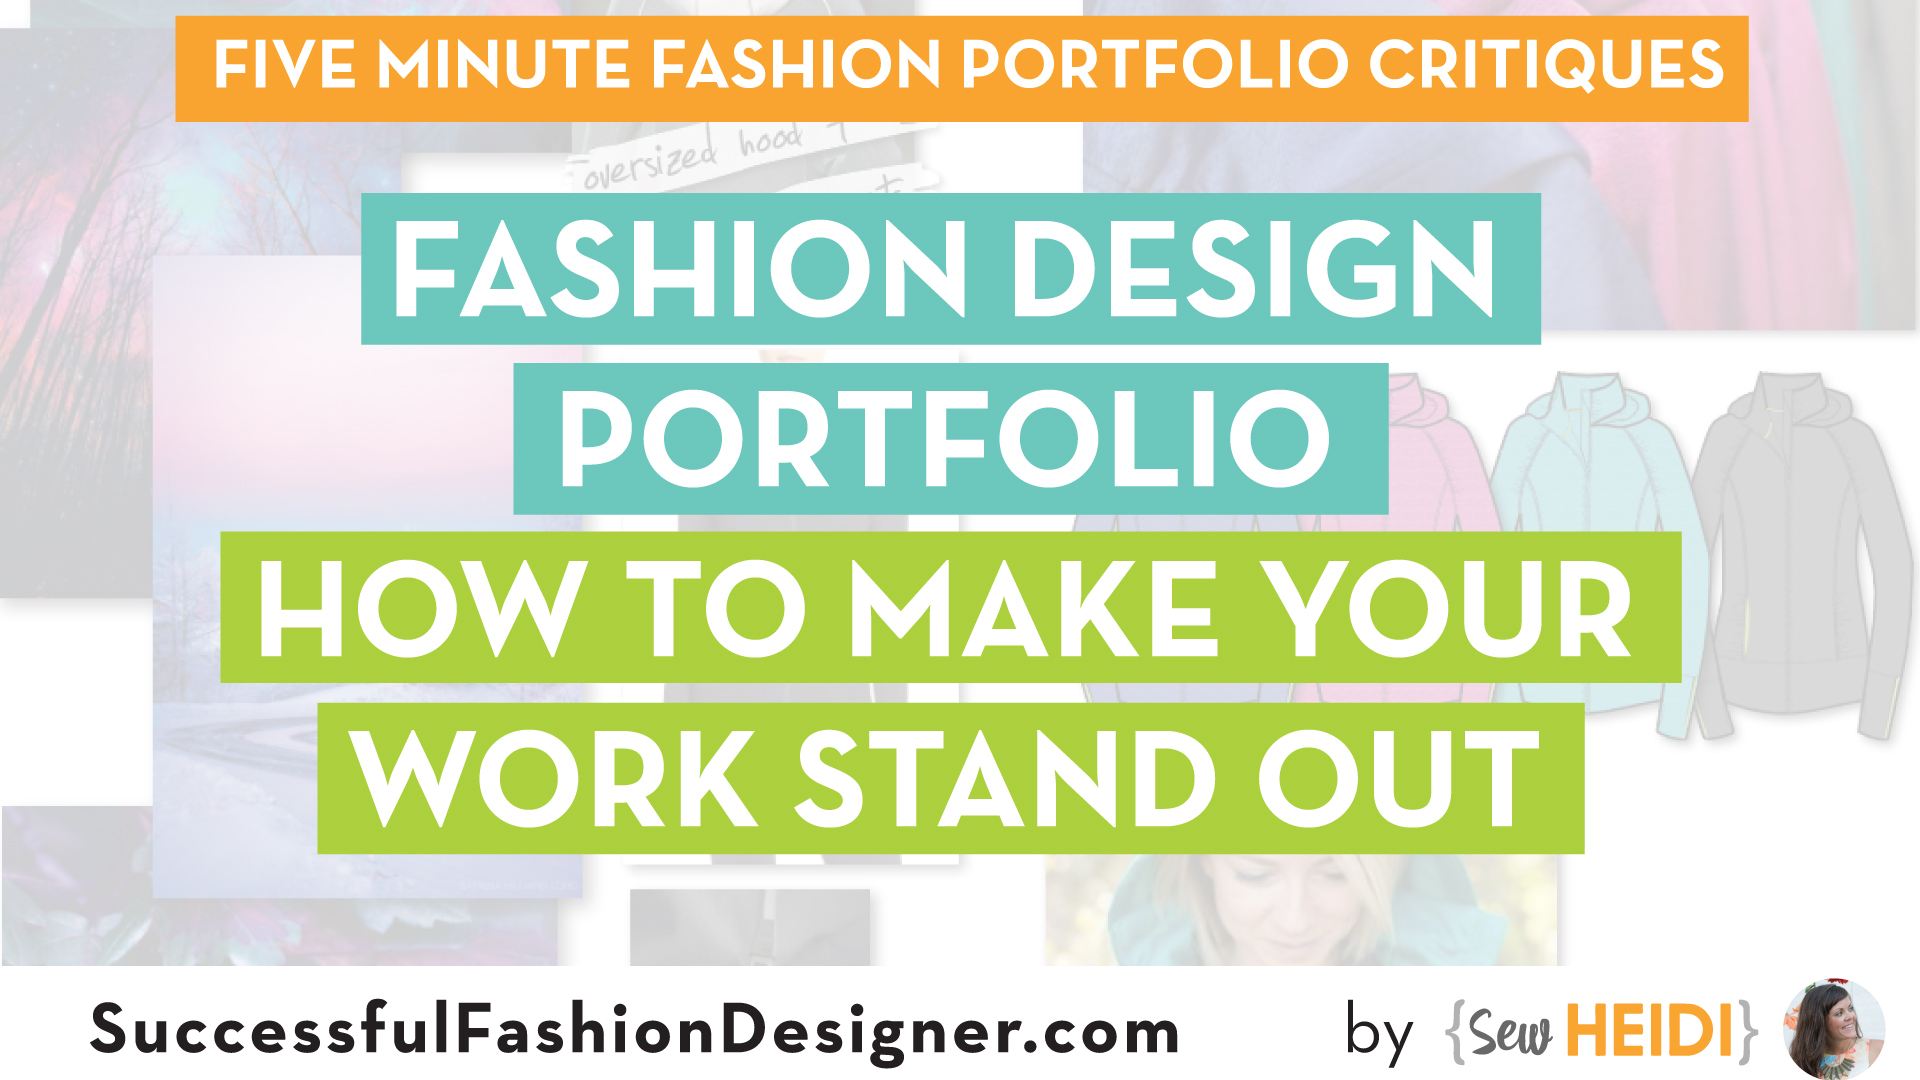 Fashion Design Portfolio Critique How To Make Your Work Stand Out Courses Free Tutorials On Adobe Illustrator Tech Packs Freelancing For Fashion Designers